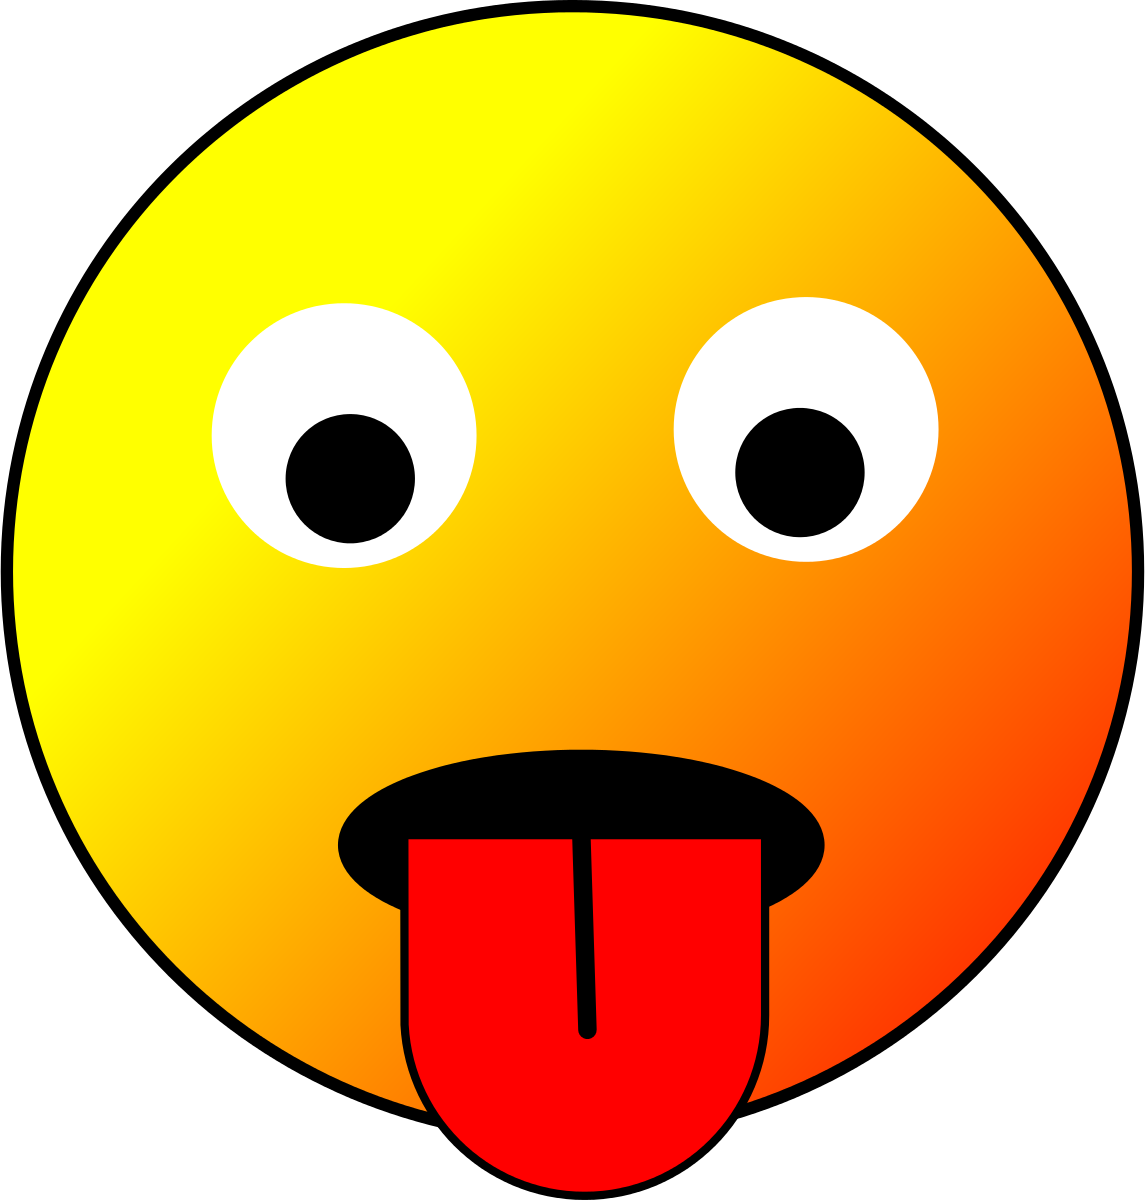 Tongue Smiley Clipart by star4clover : Smiley Cliparts #19070 ...